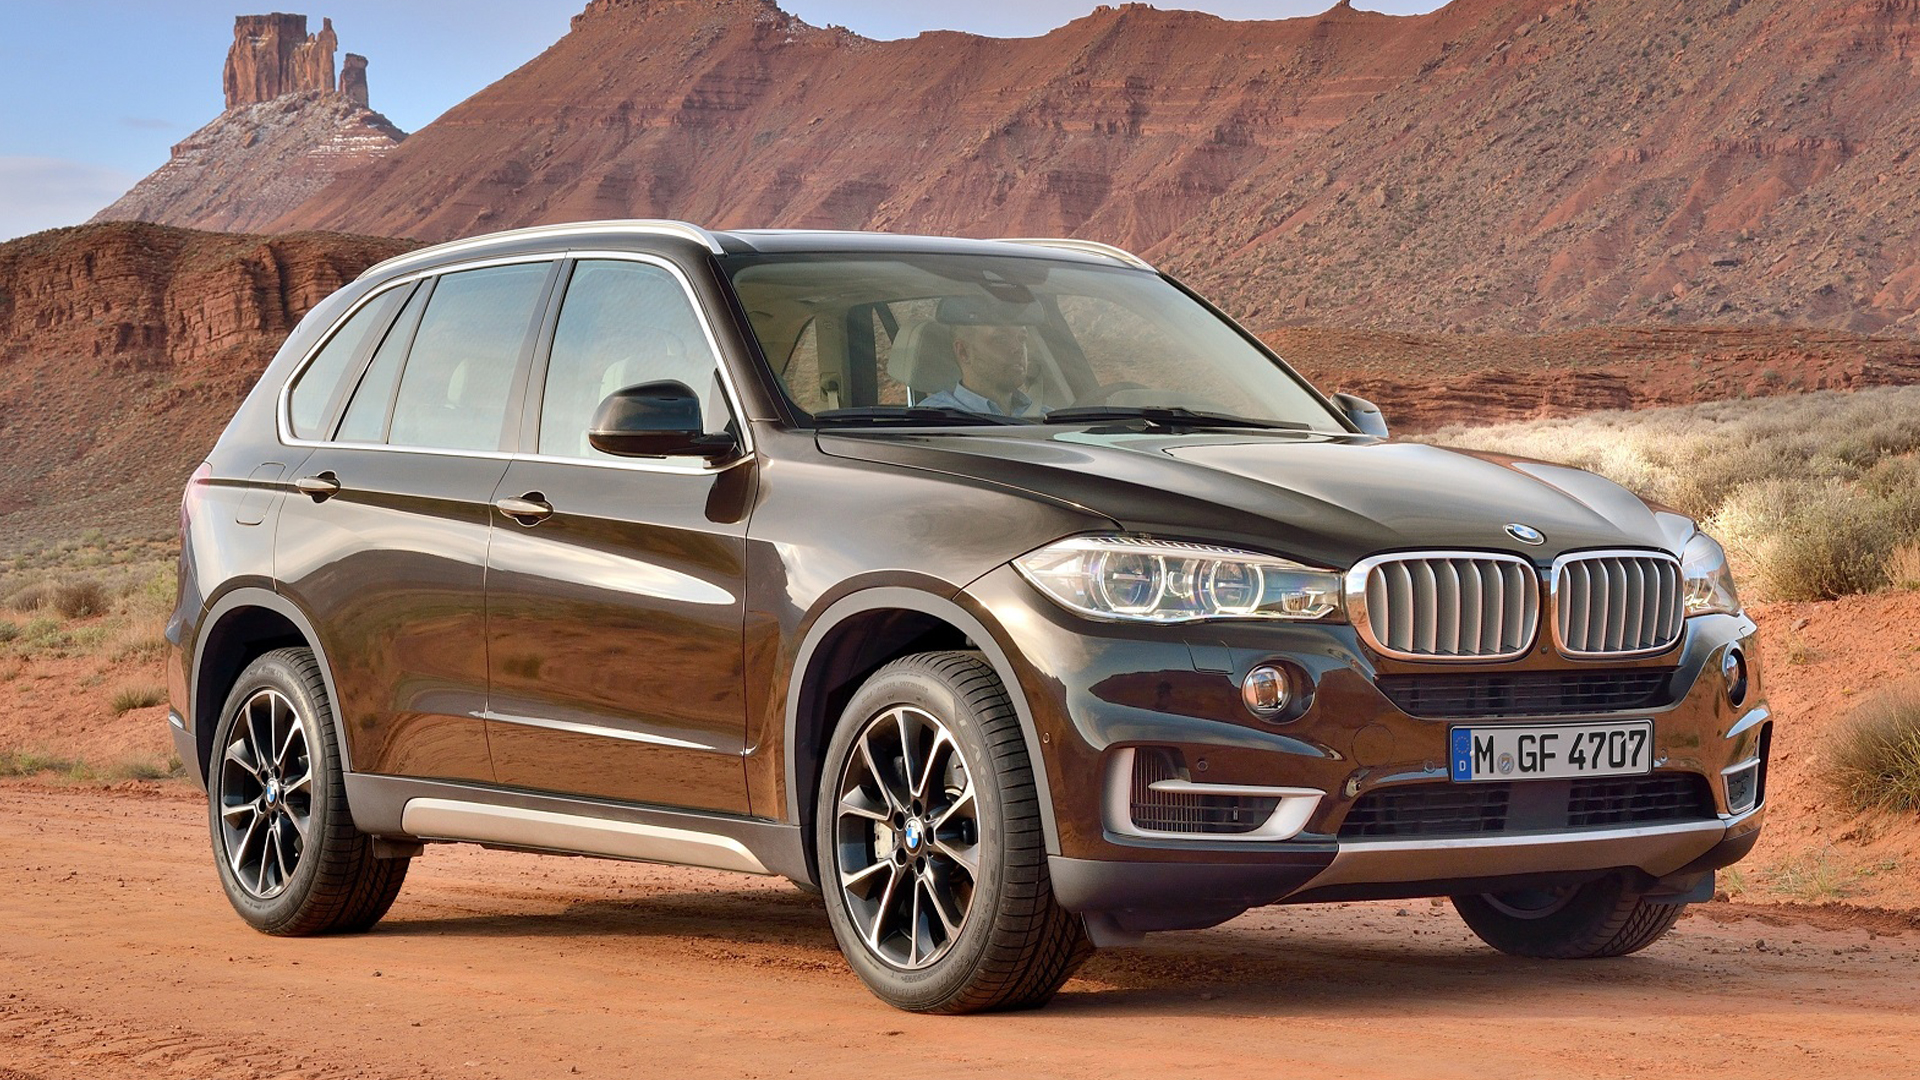 required of suv satisfy with you sharp expectation photo filled to a iperformance quality ride settings ice cubes about handling need like review bmw mixer know things also the cement deliver